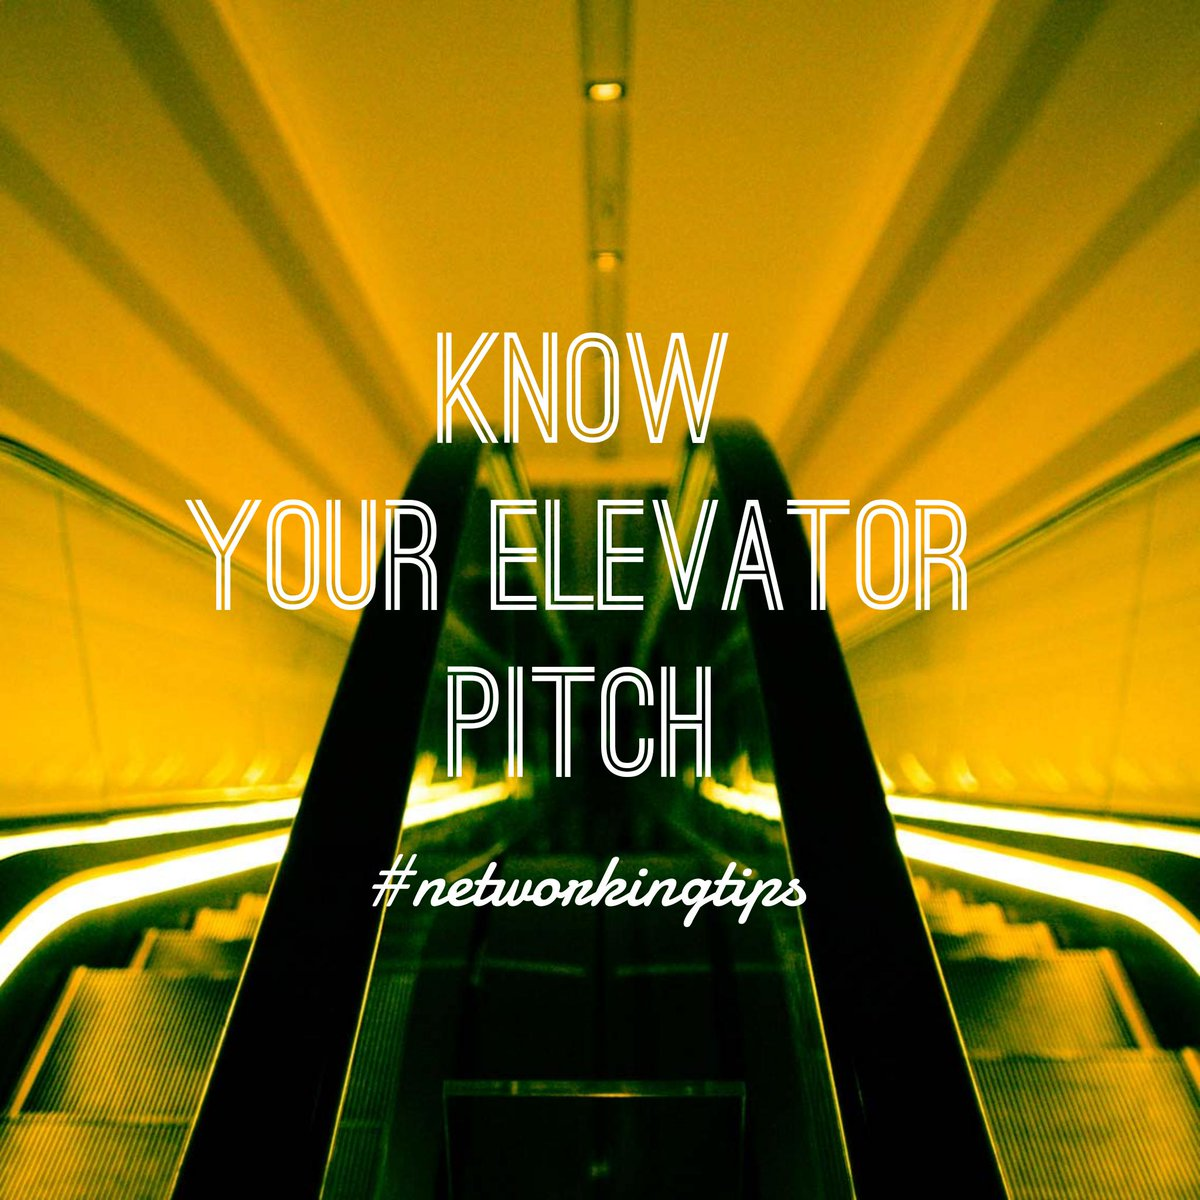 RT @athena_beds: Thursday's #networkingtips #toptips get your elevator pitch right, did you know at @AthenaNetwork we offer training for #networkingskills?  #writingskills #businessgrowth #businessdevelopment #businessnetworking https://t.co/EBta0E62e8